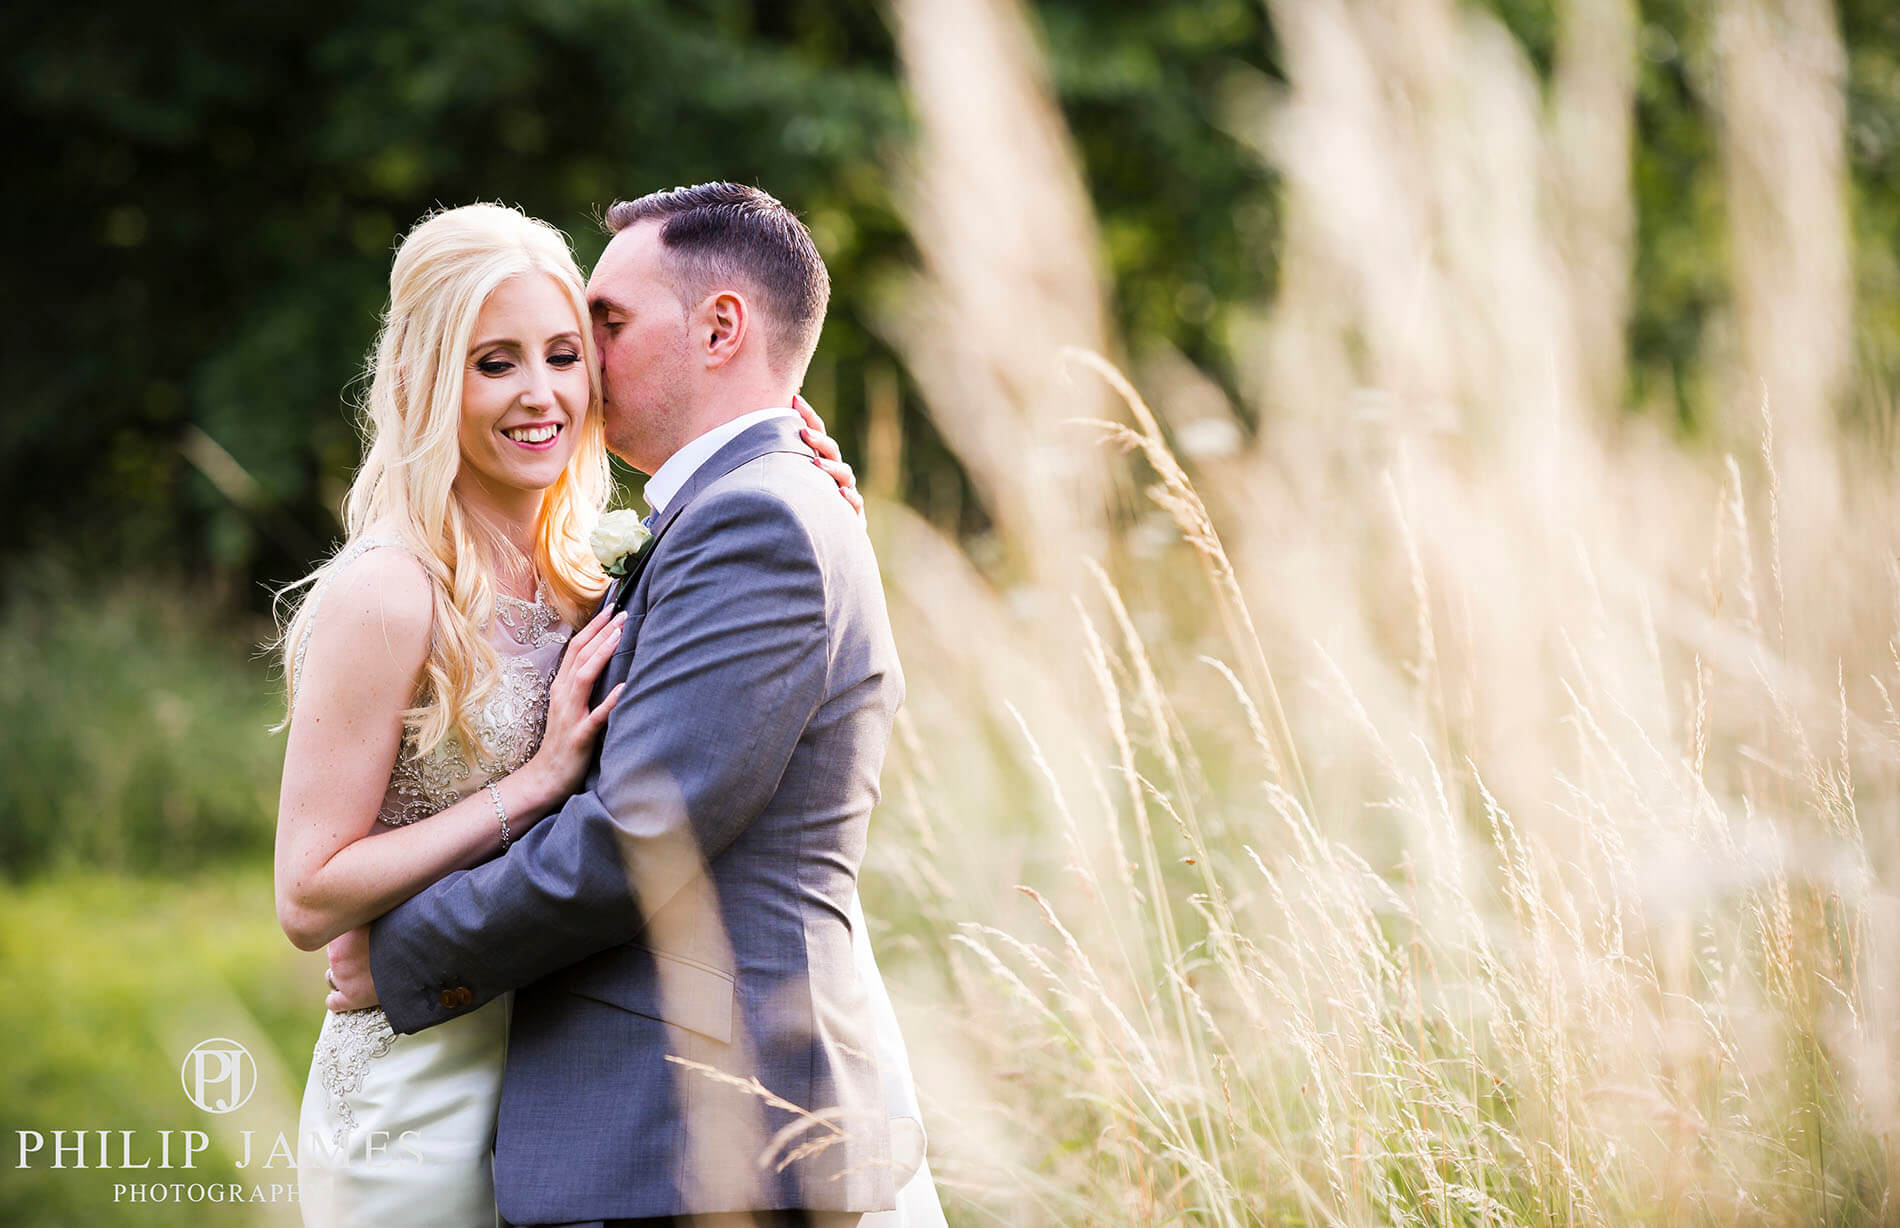 Birmingham Wedding Photographer - Philip James Photography based in Solihull (24 of 68)